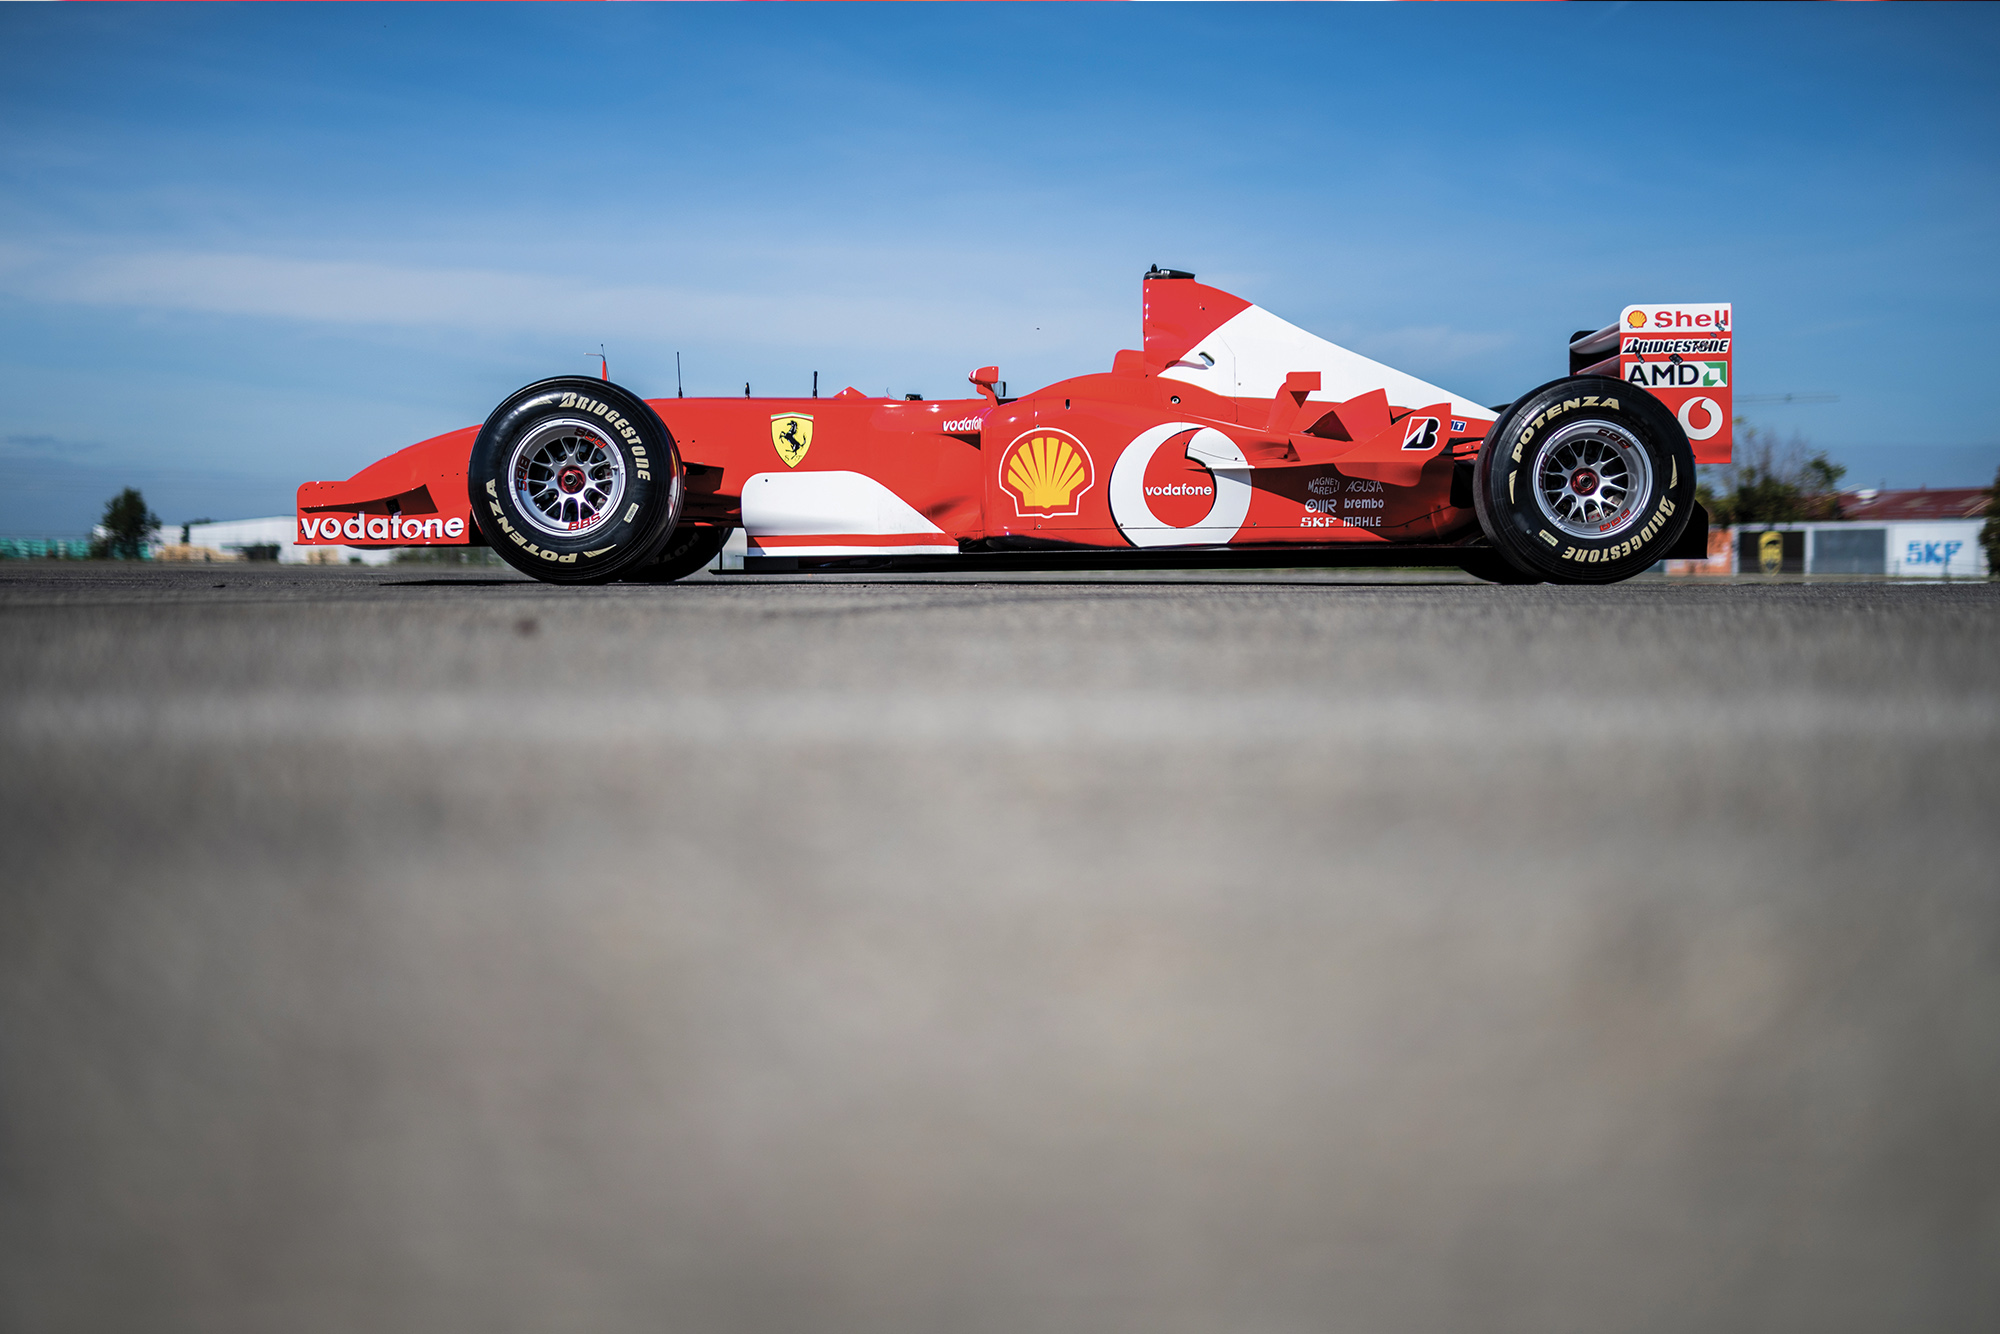 Michael Schumacher's Ferrari F2002 for auction side view